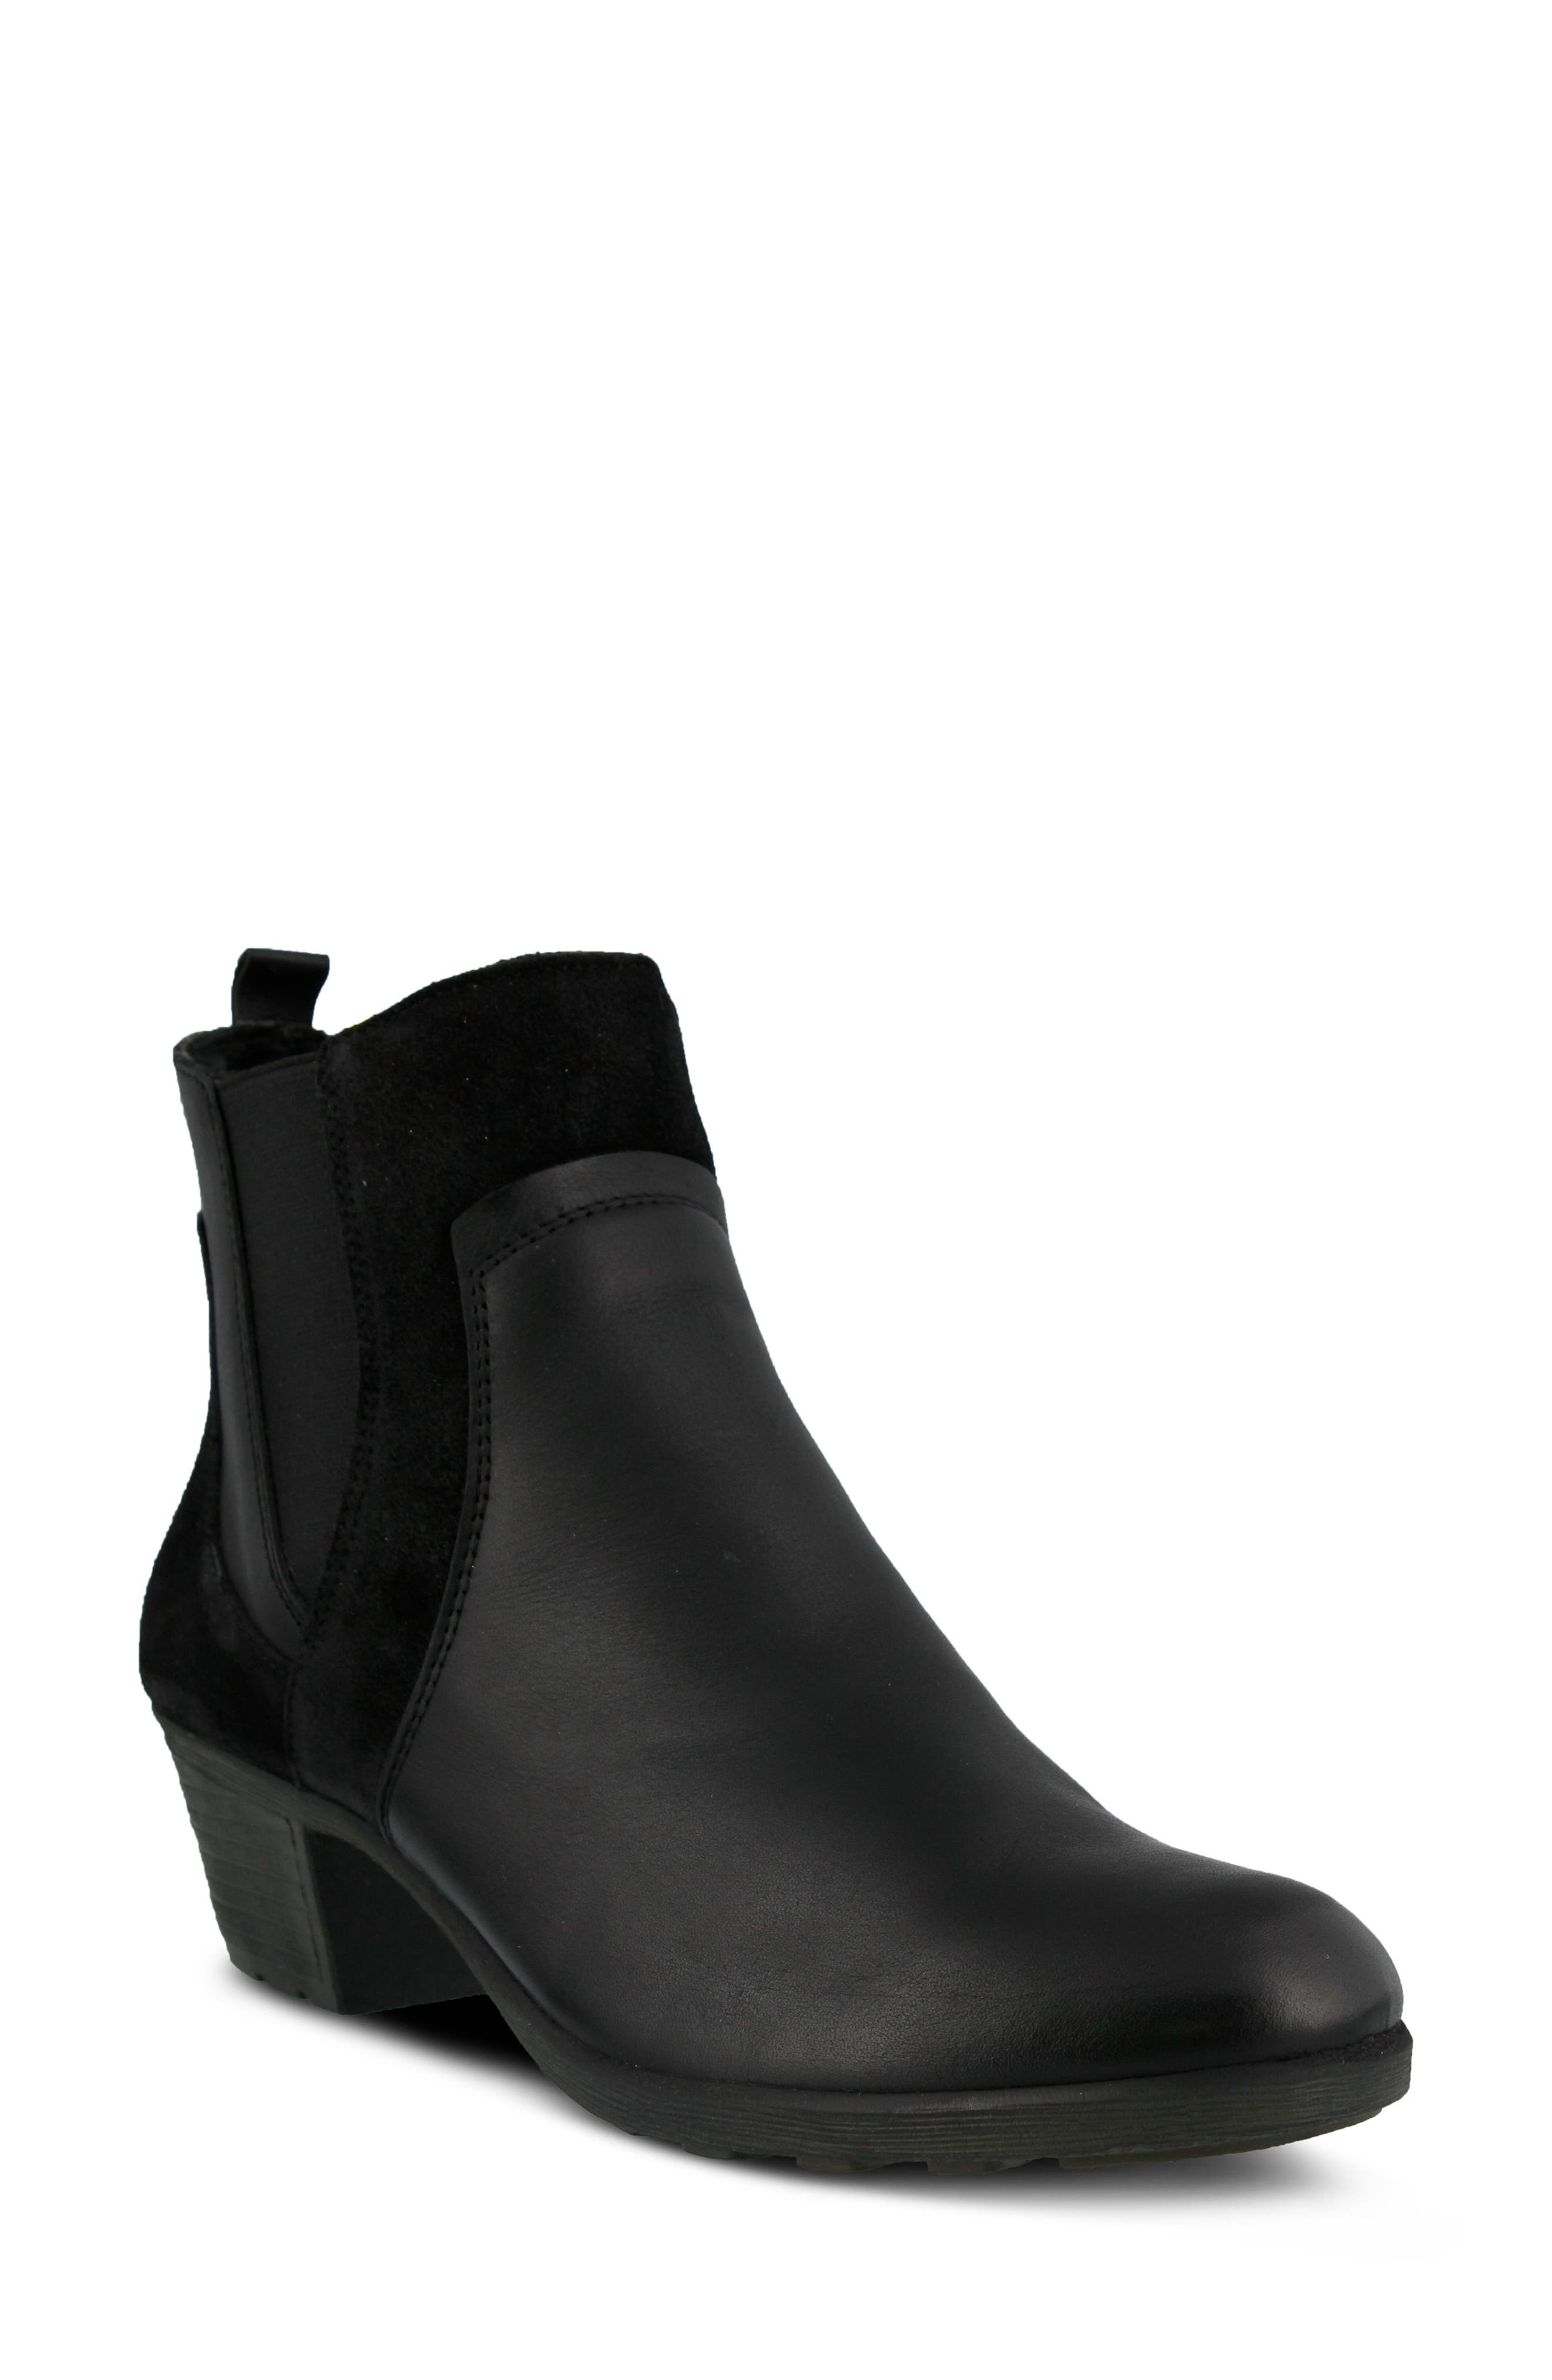 Pousada Bootie,                             Main thumbnail 1, color,                             Black Leather